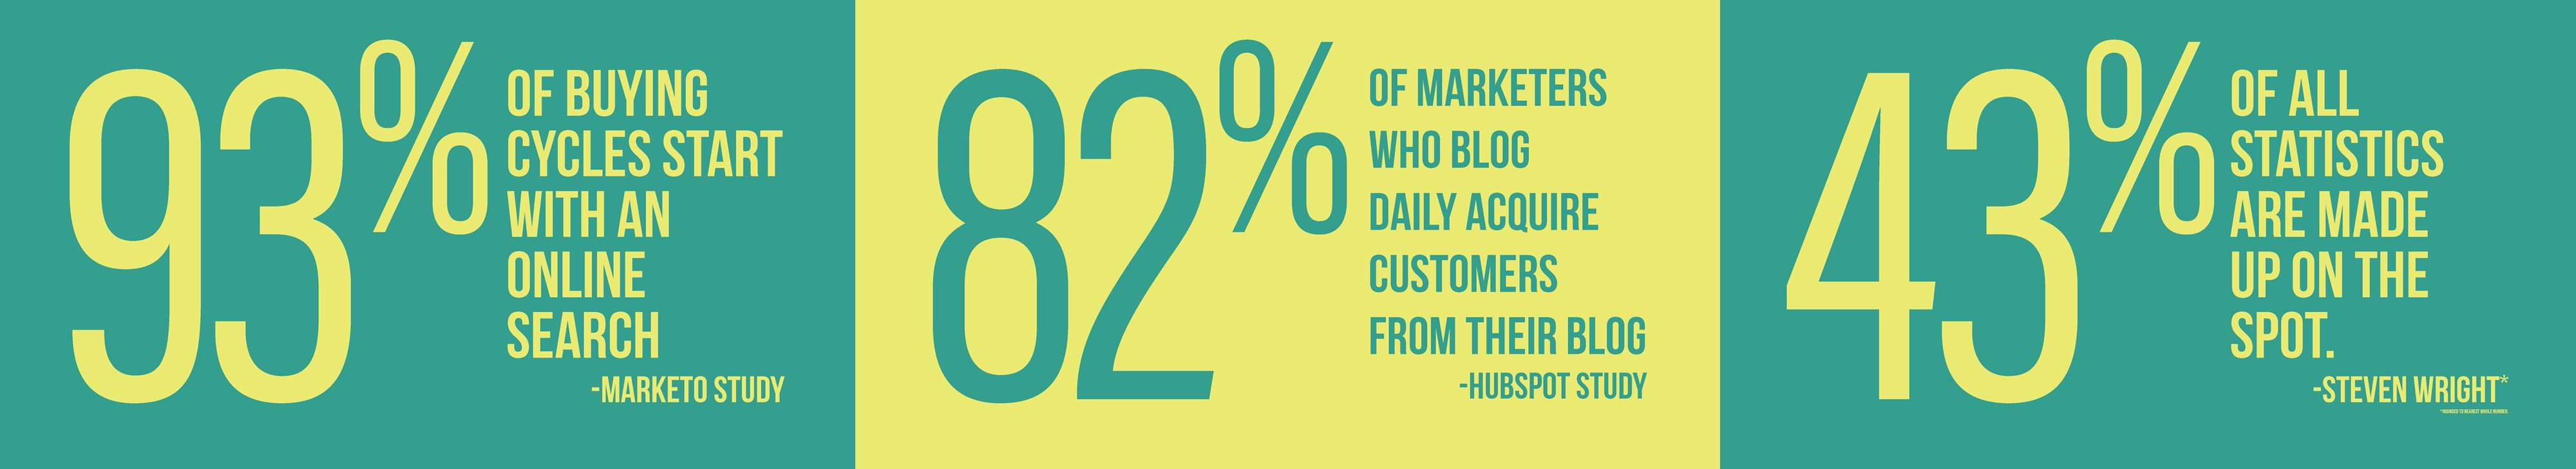 Important statistics about buyer cycles and blogging as part of the buyer's journey.